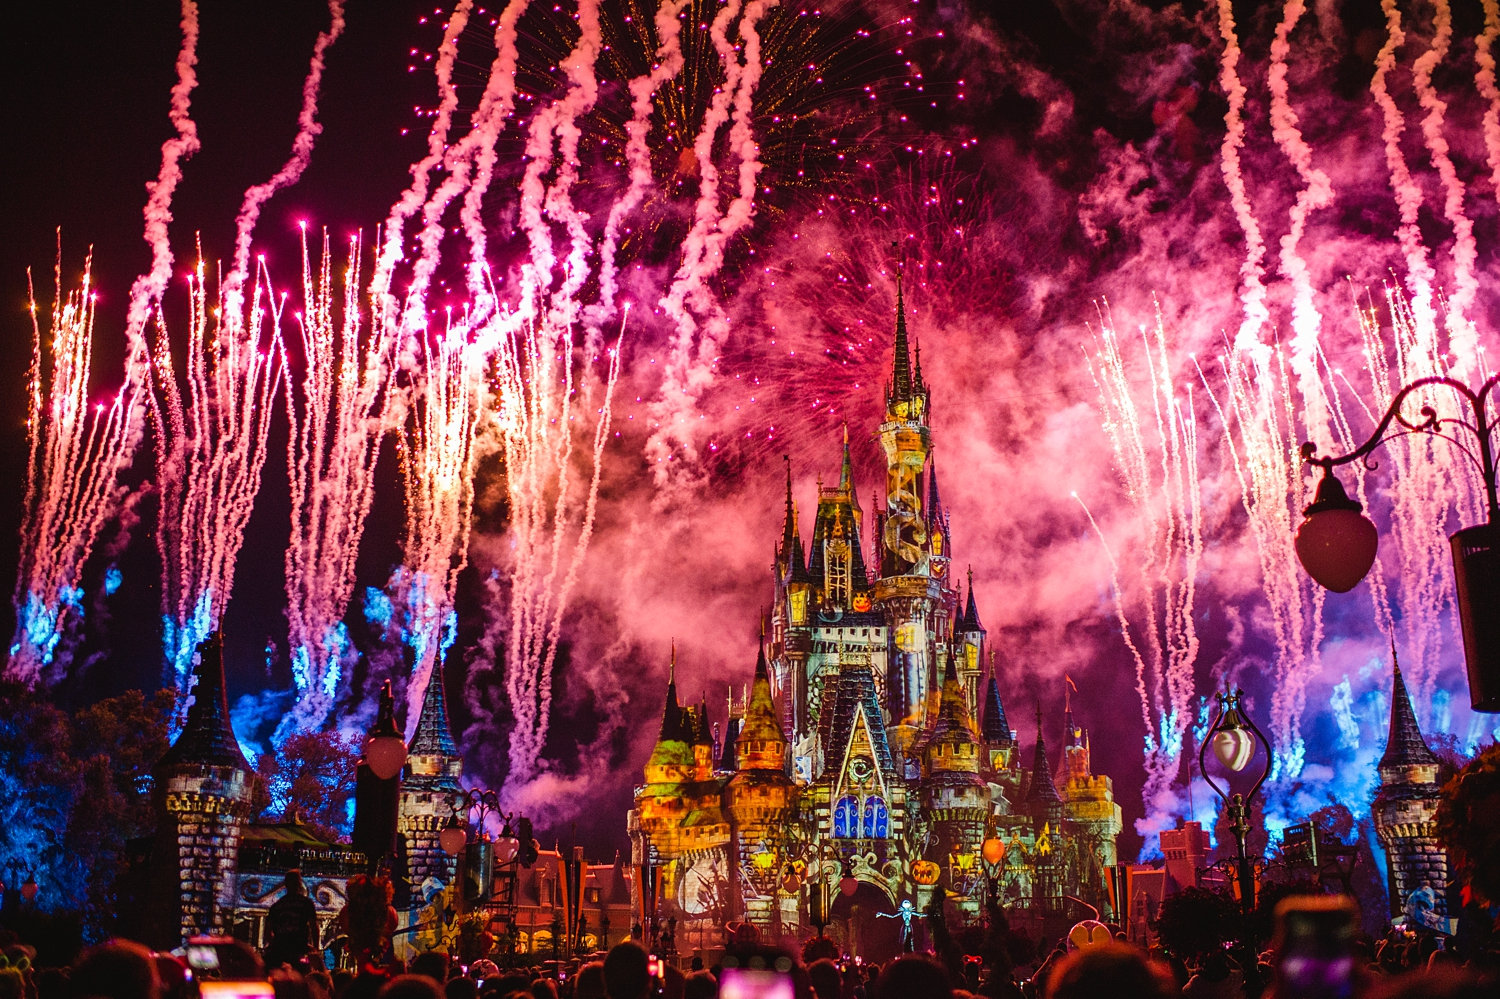 Halloween fireworks show at Magic Kingdom, Mickey's Not So Scary Halloween Party Jack Skellington